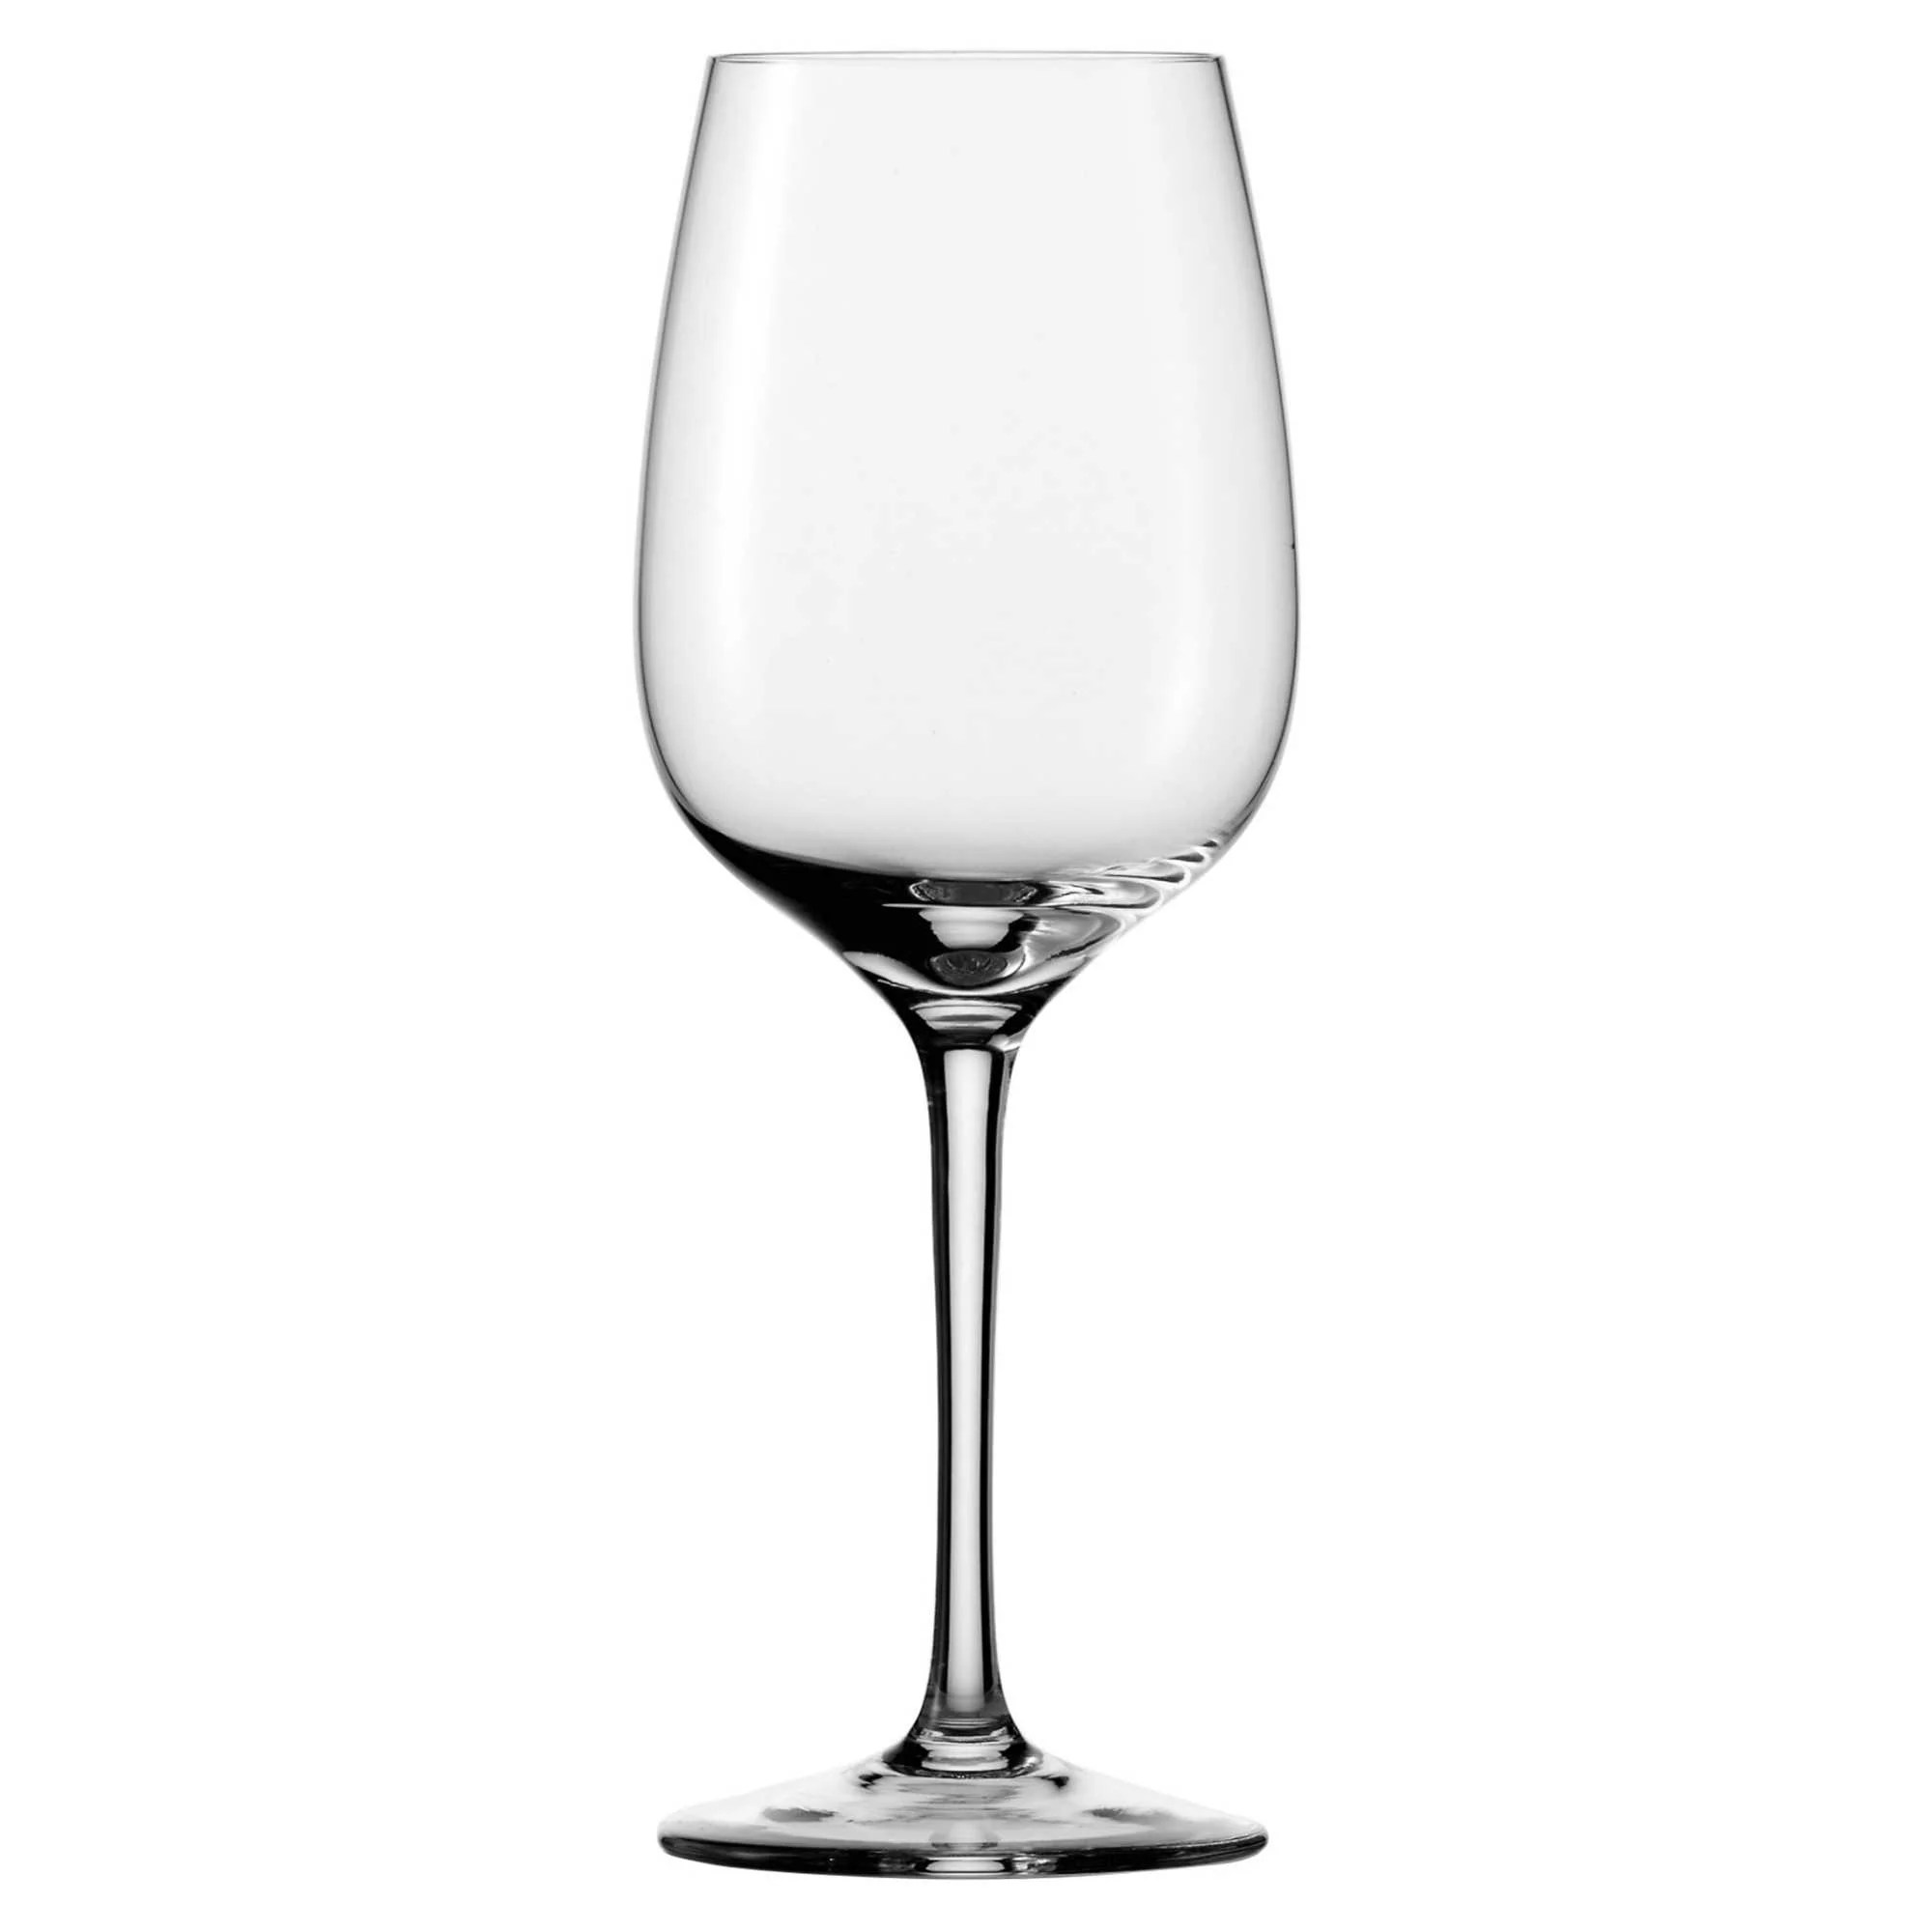 Chardonnay Wine Glass Eisch Superior Chardonnay Glass